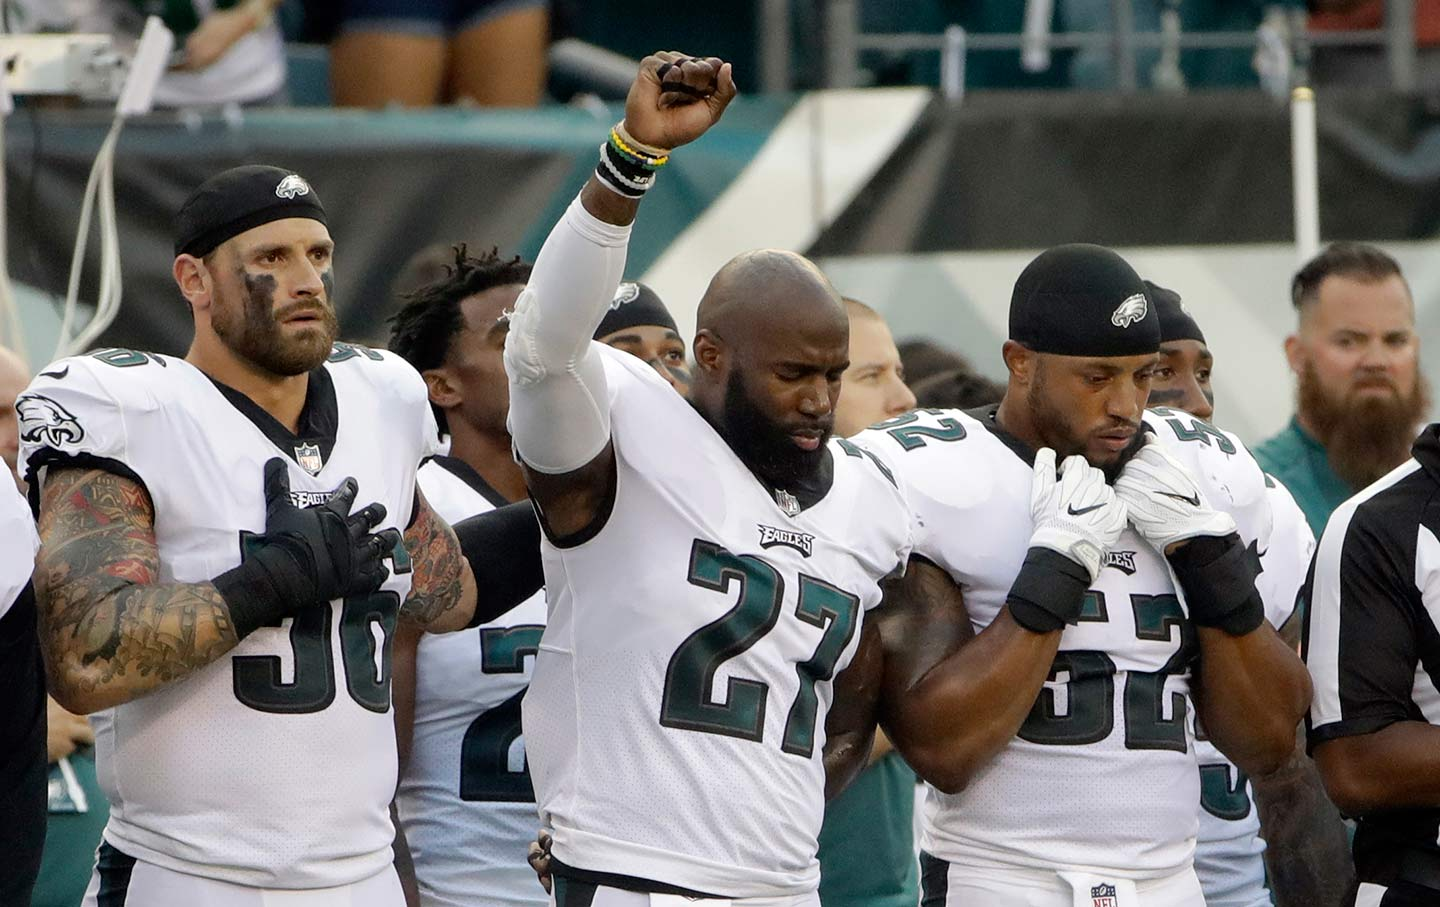 Philadelphia Eagles' Malcolm Jenkins raises his fist during the national anthem on Thursday, August 17, 2017.